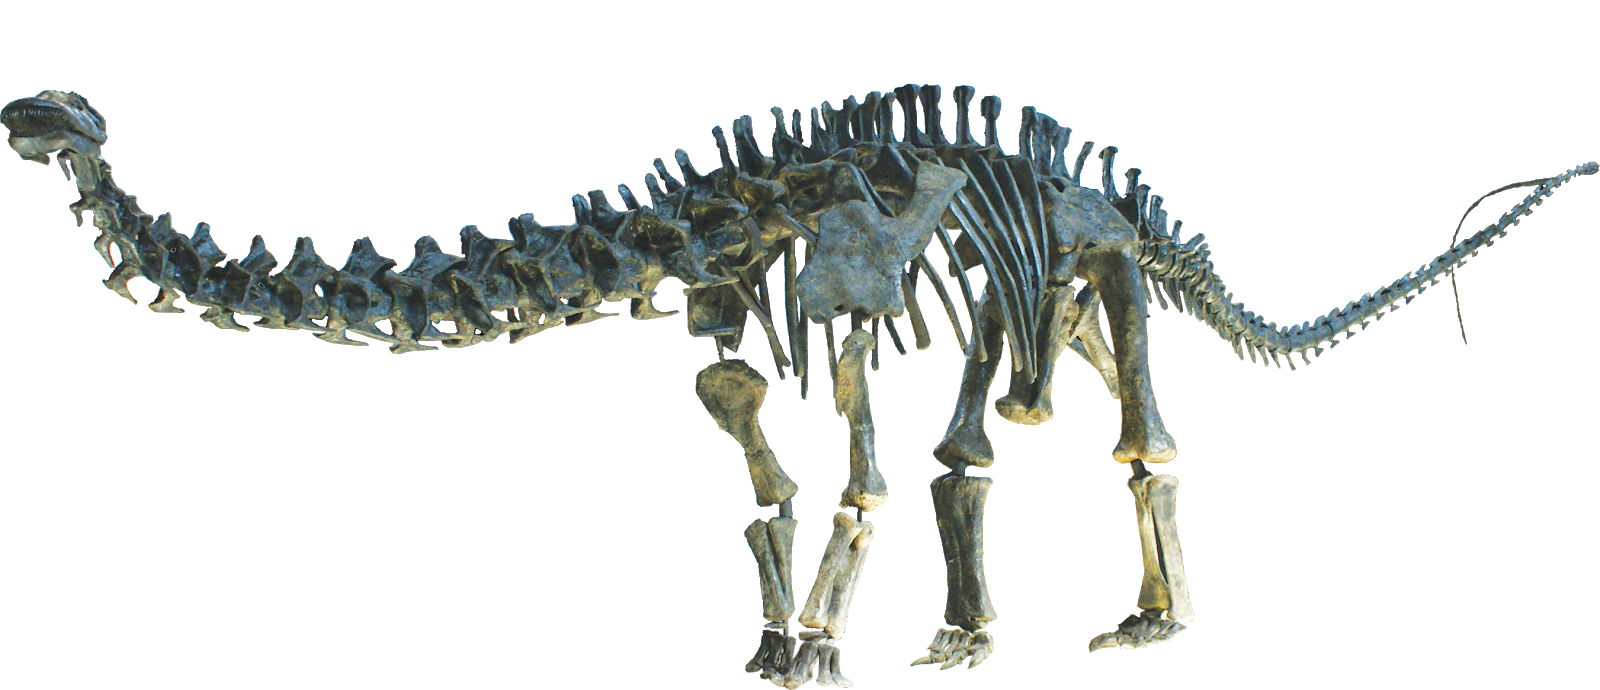 Brontosaurus: by MCDinosaurhunter Own work, CC BY-SA 3.0 https://commons.wikimedia.org/w/index.php?curid=33465760